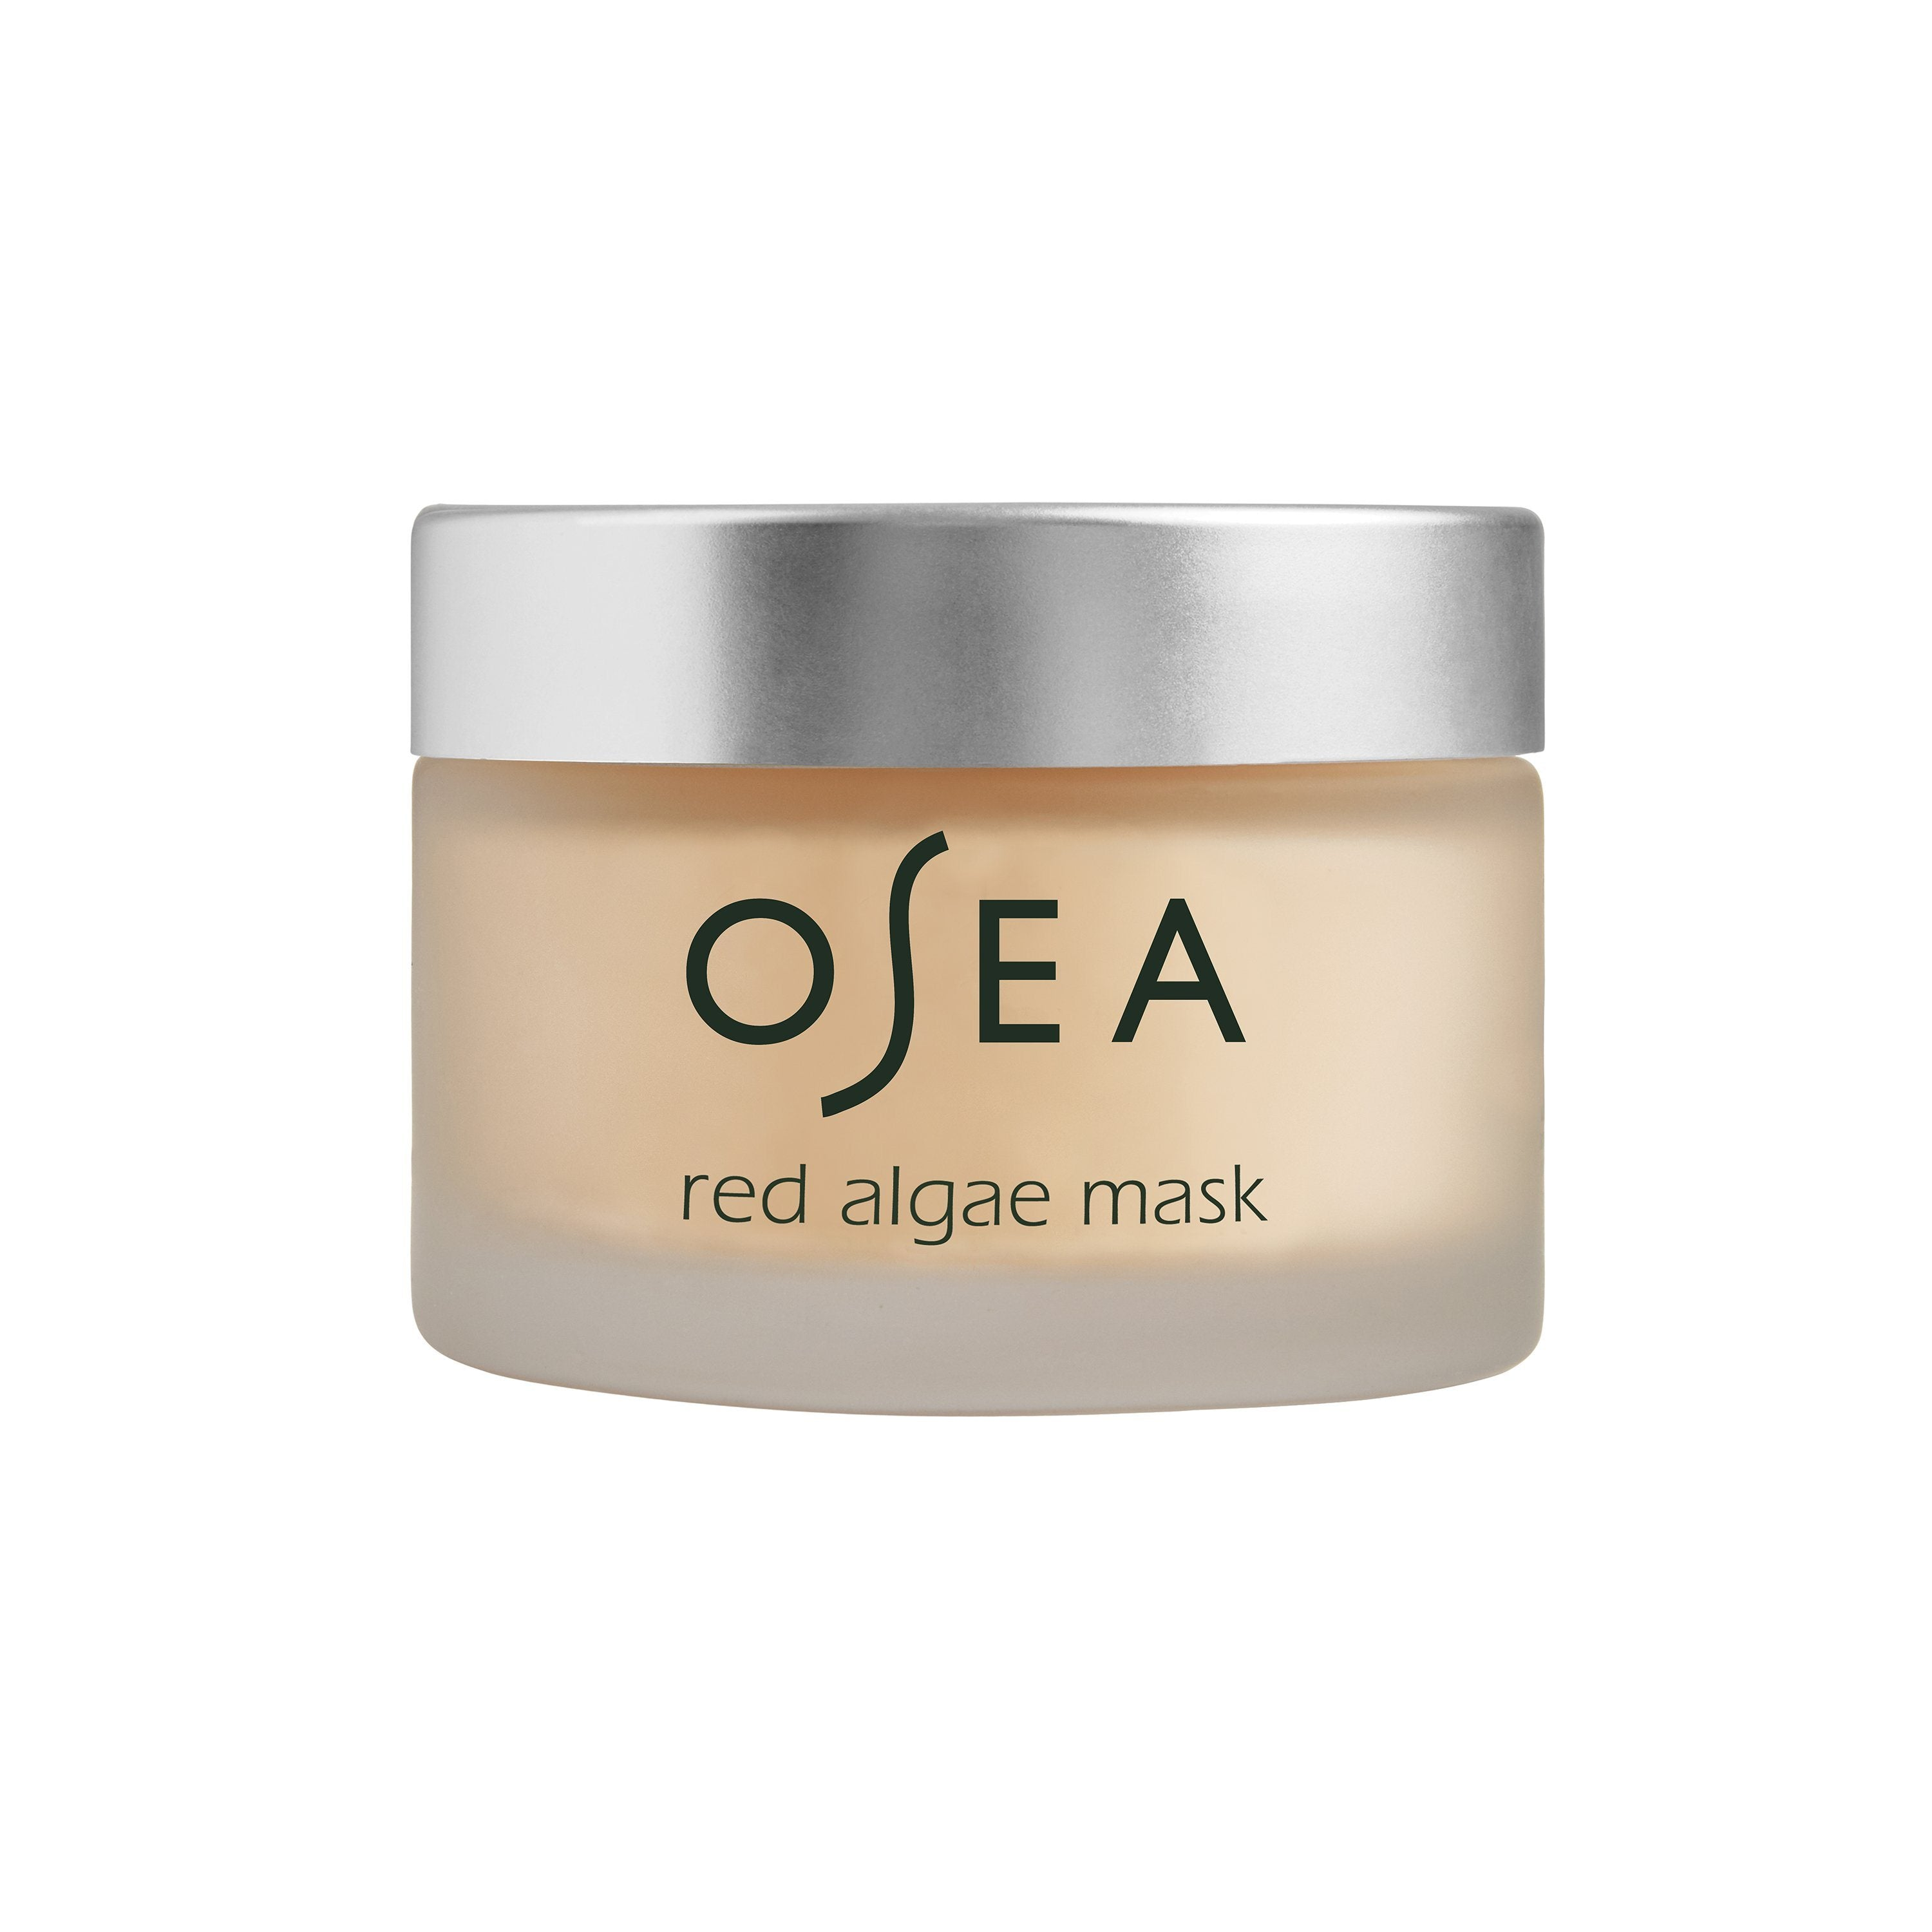 Red Algae Mask by Osea